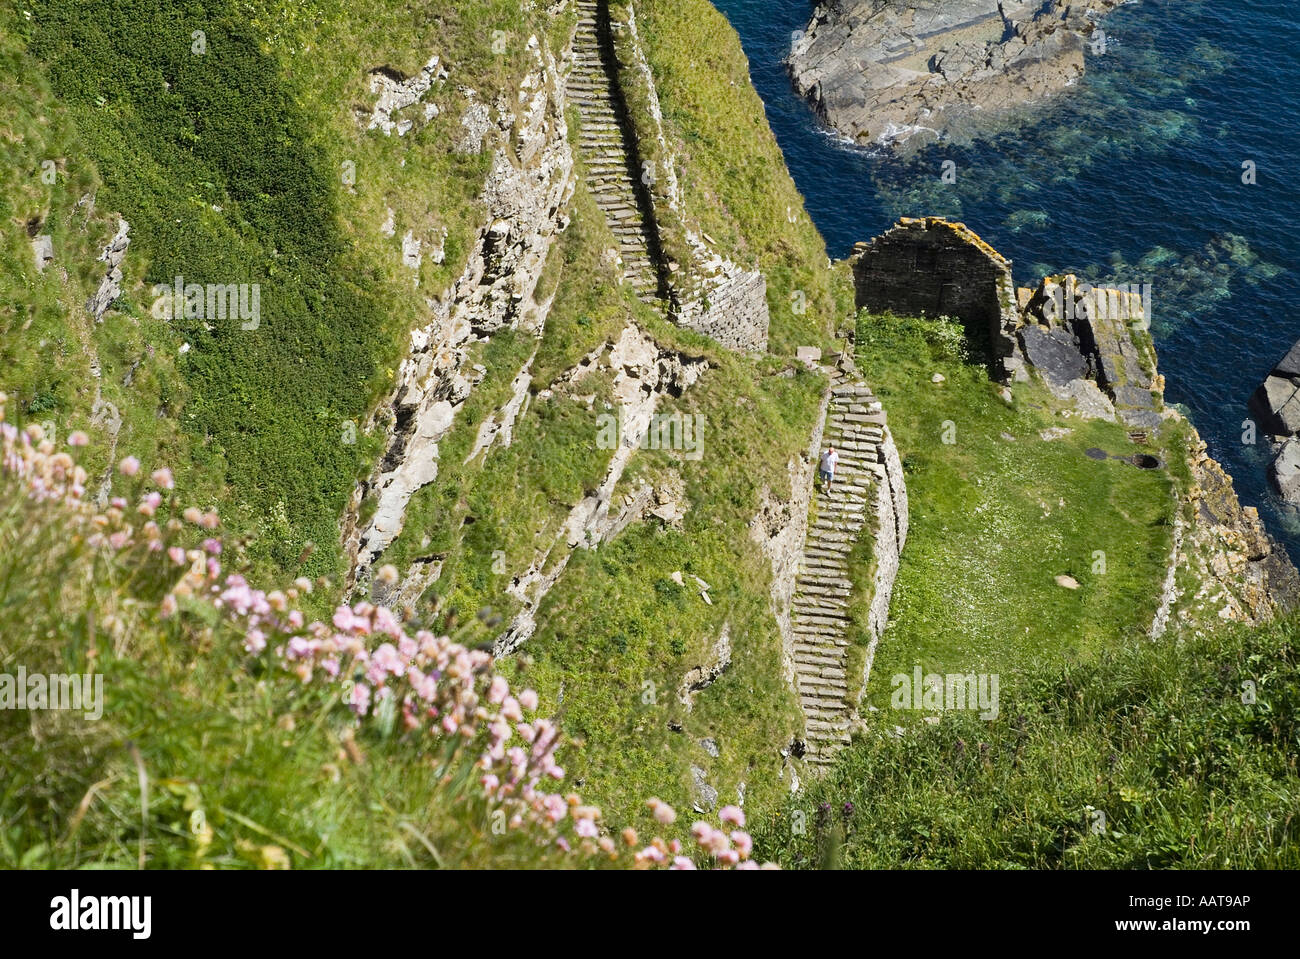 dh North coast 500 WHALIGOE CAITHNESS Man walking down steep stone steps to cove fishing harbour carved out of seacliff scotland tourist Stock Photo